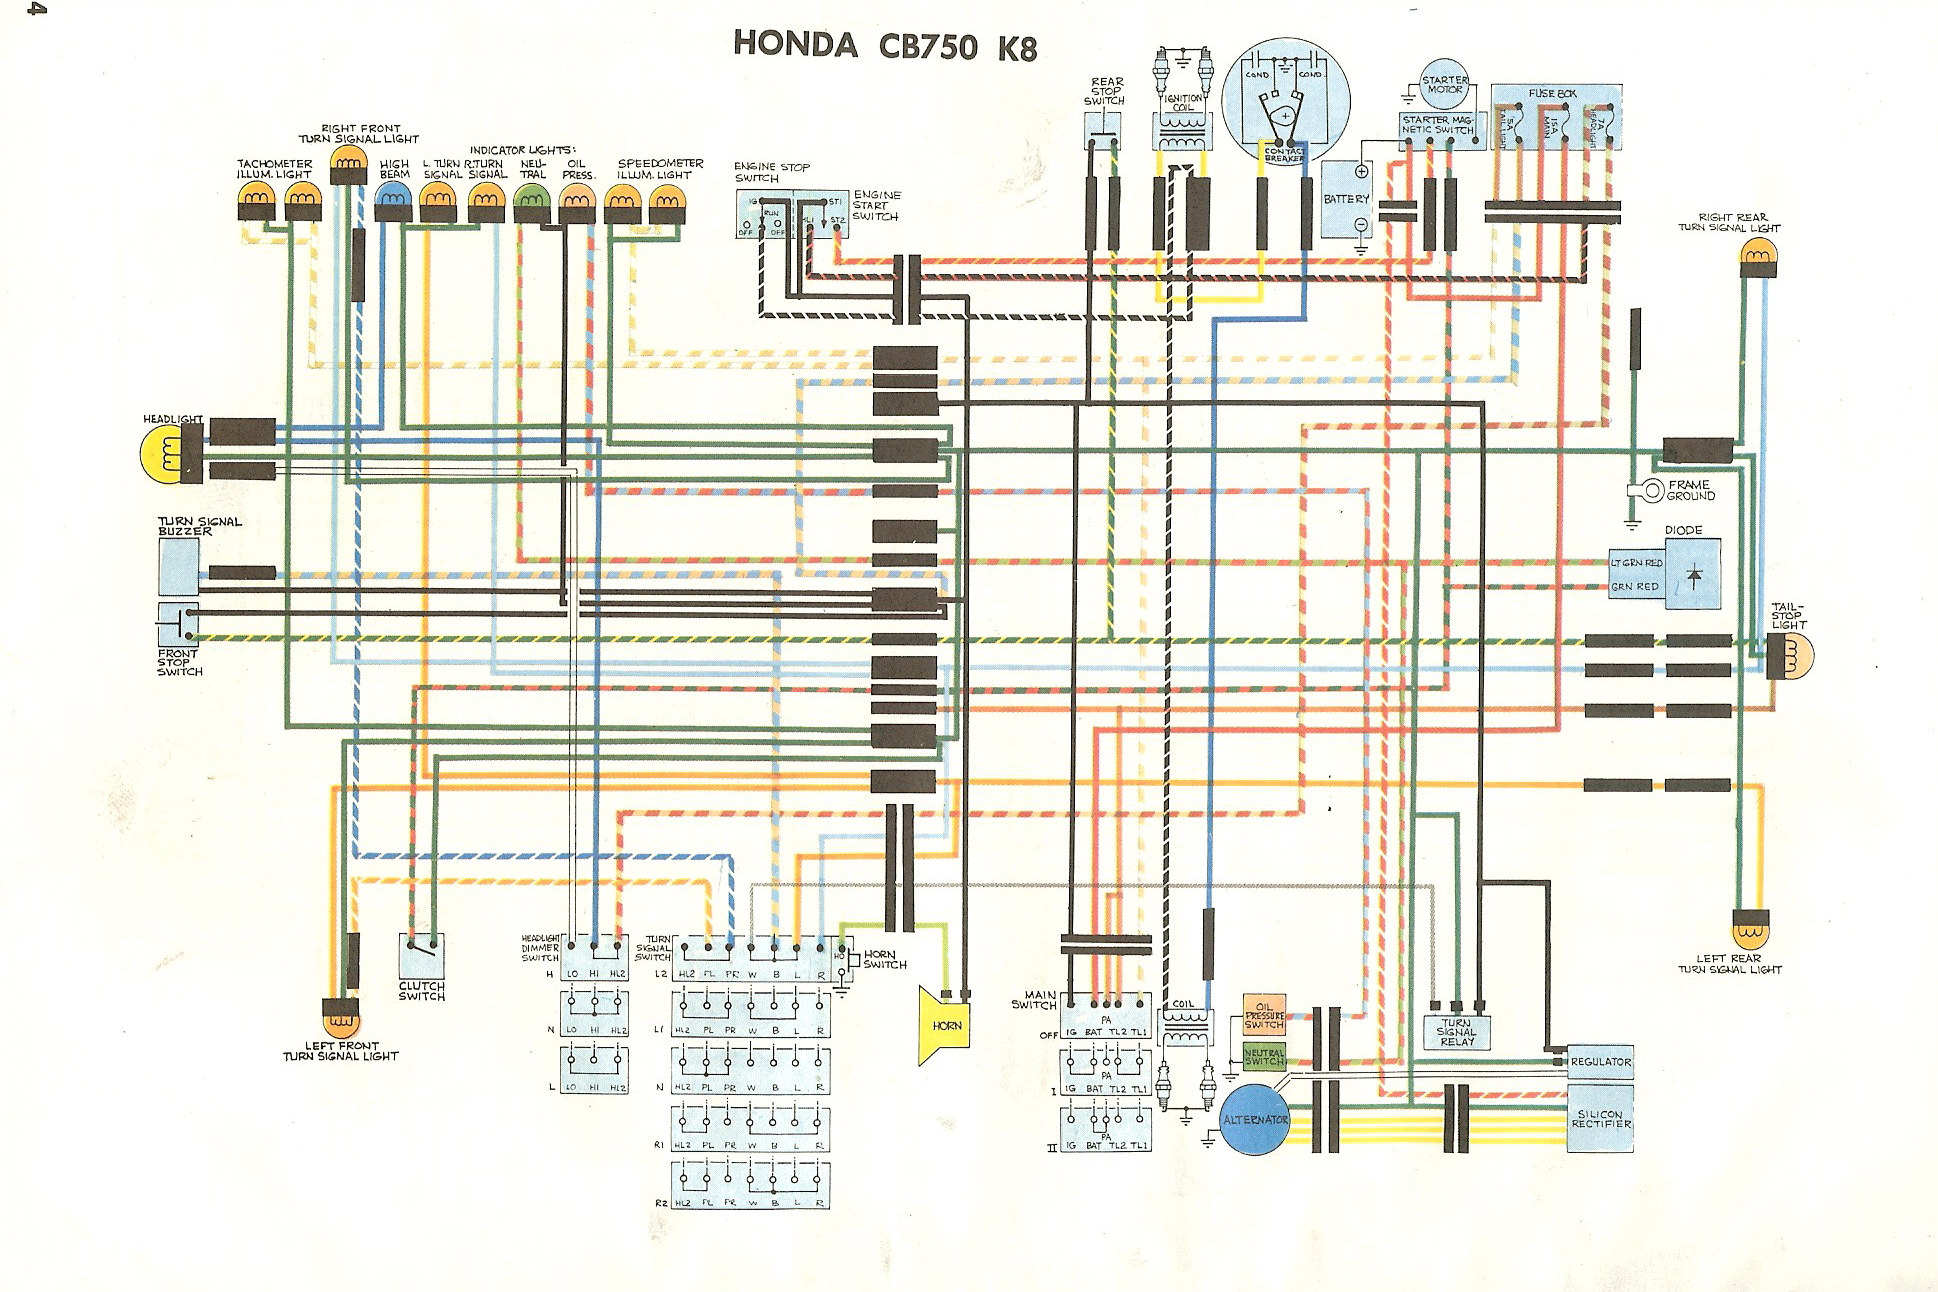 WD750K8 1978 honda cb750 wiring diagram honda cb 700 ignition wire diagram cb550 chopper wiring diagram at aneh.co